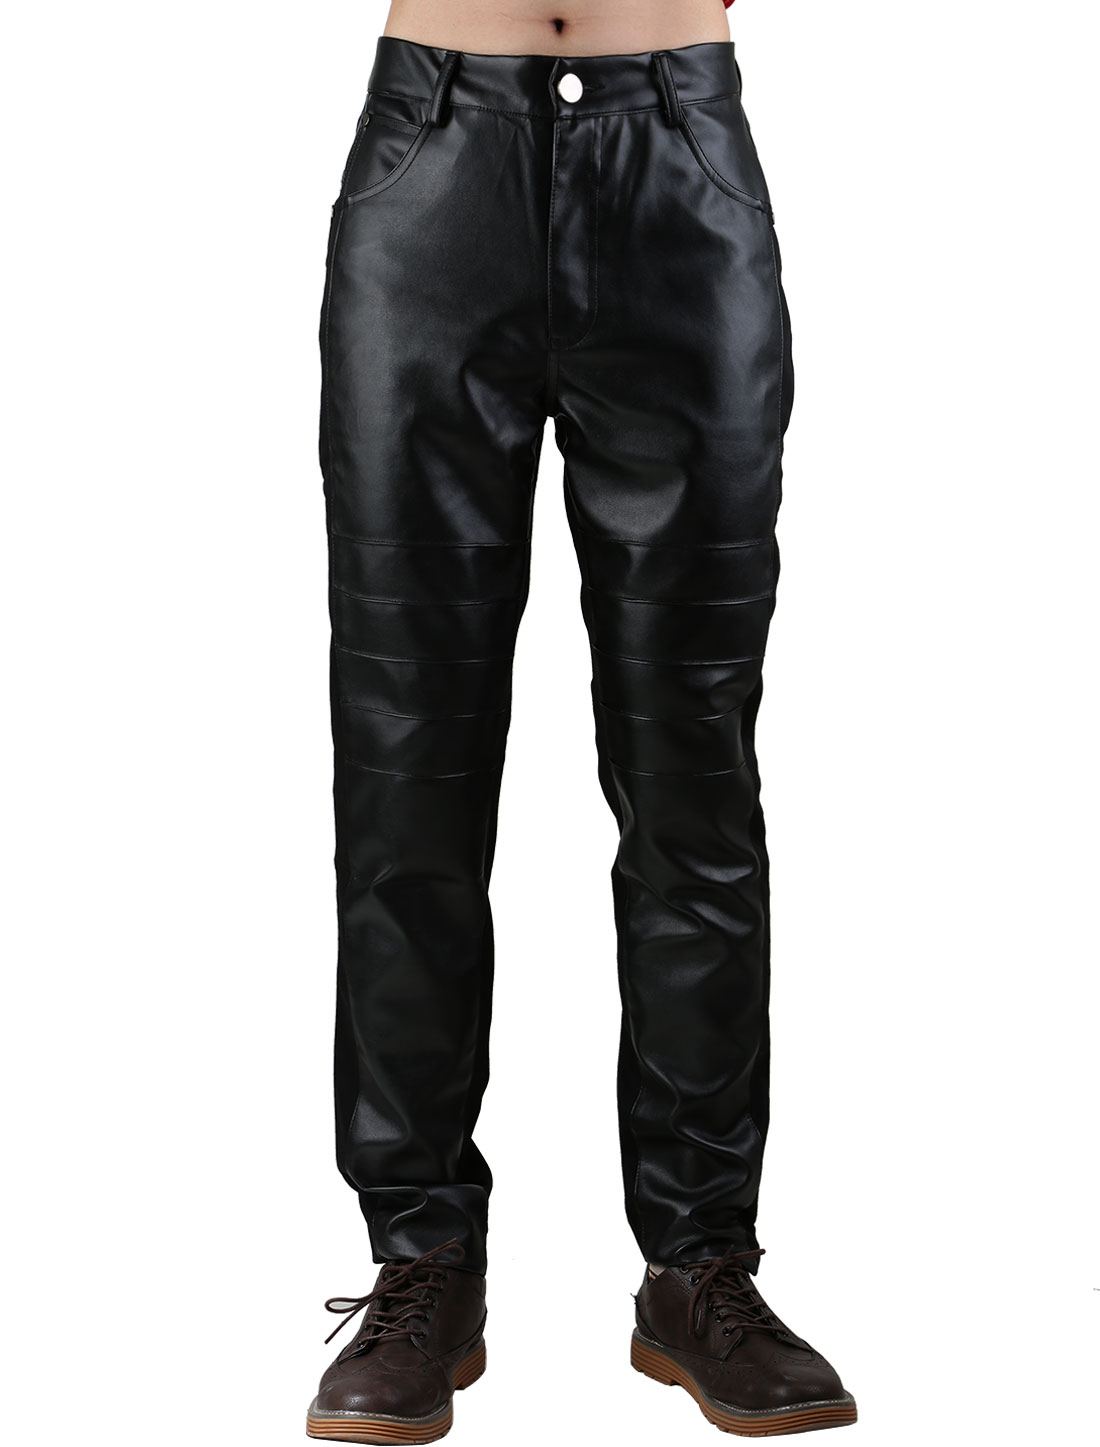 Men Five Pockets Pleated Imitation Leather Panel Casual Pants Black XS